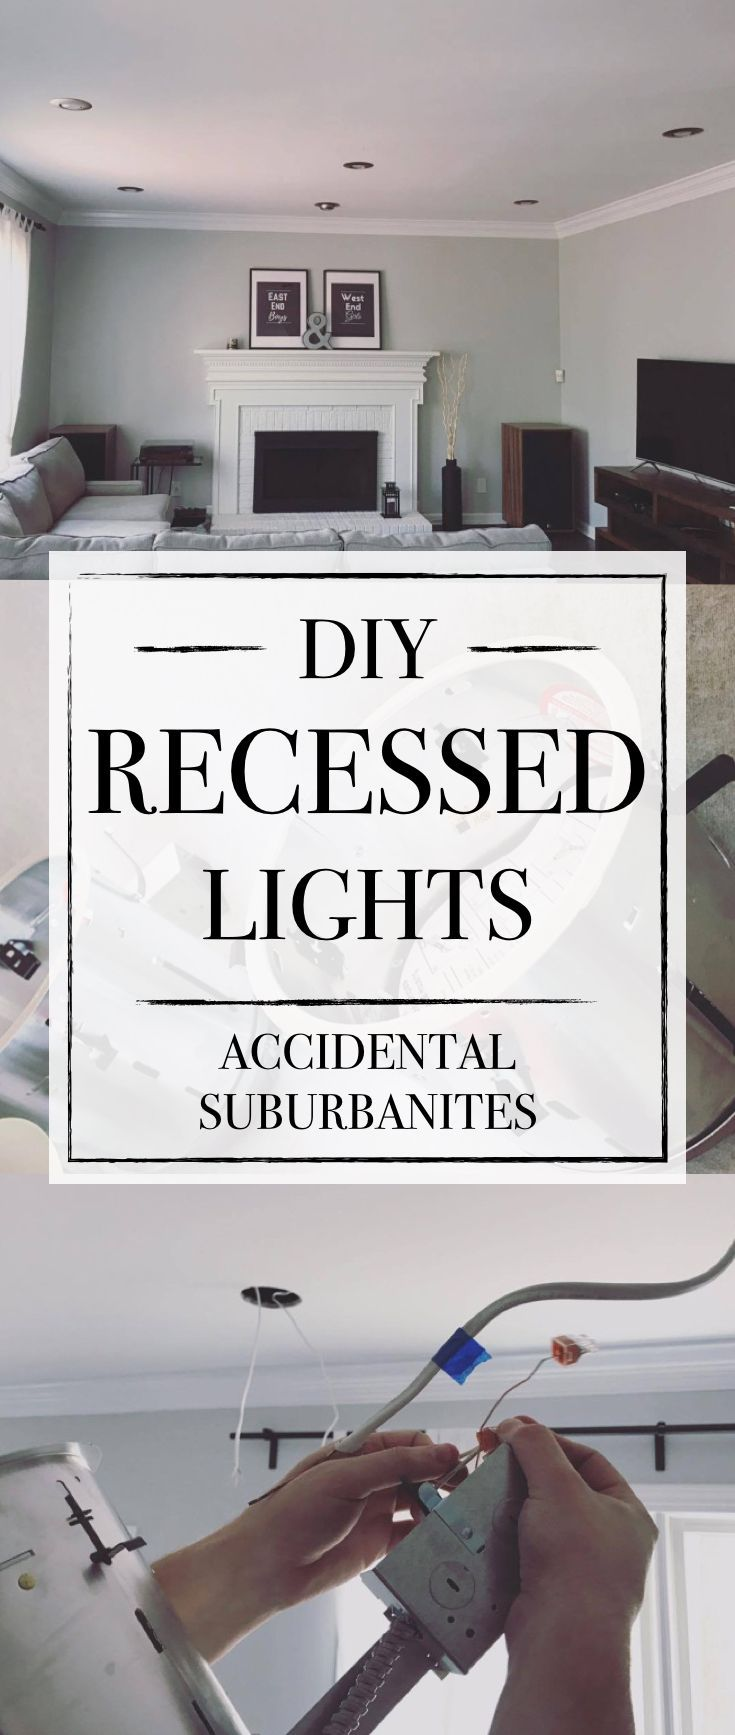 DIY Recessed Lighting   How To Install Recessed Lights With No Attic  Access, Convert Existing